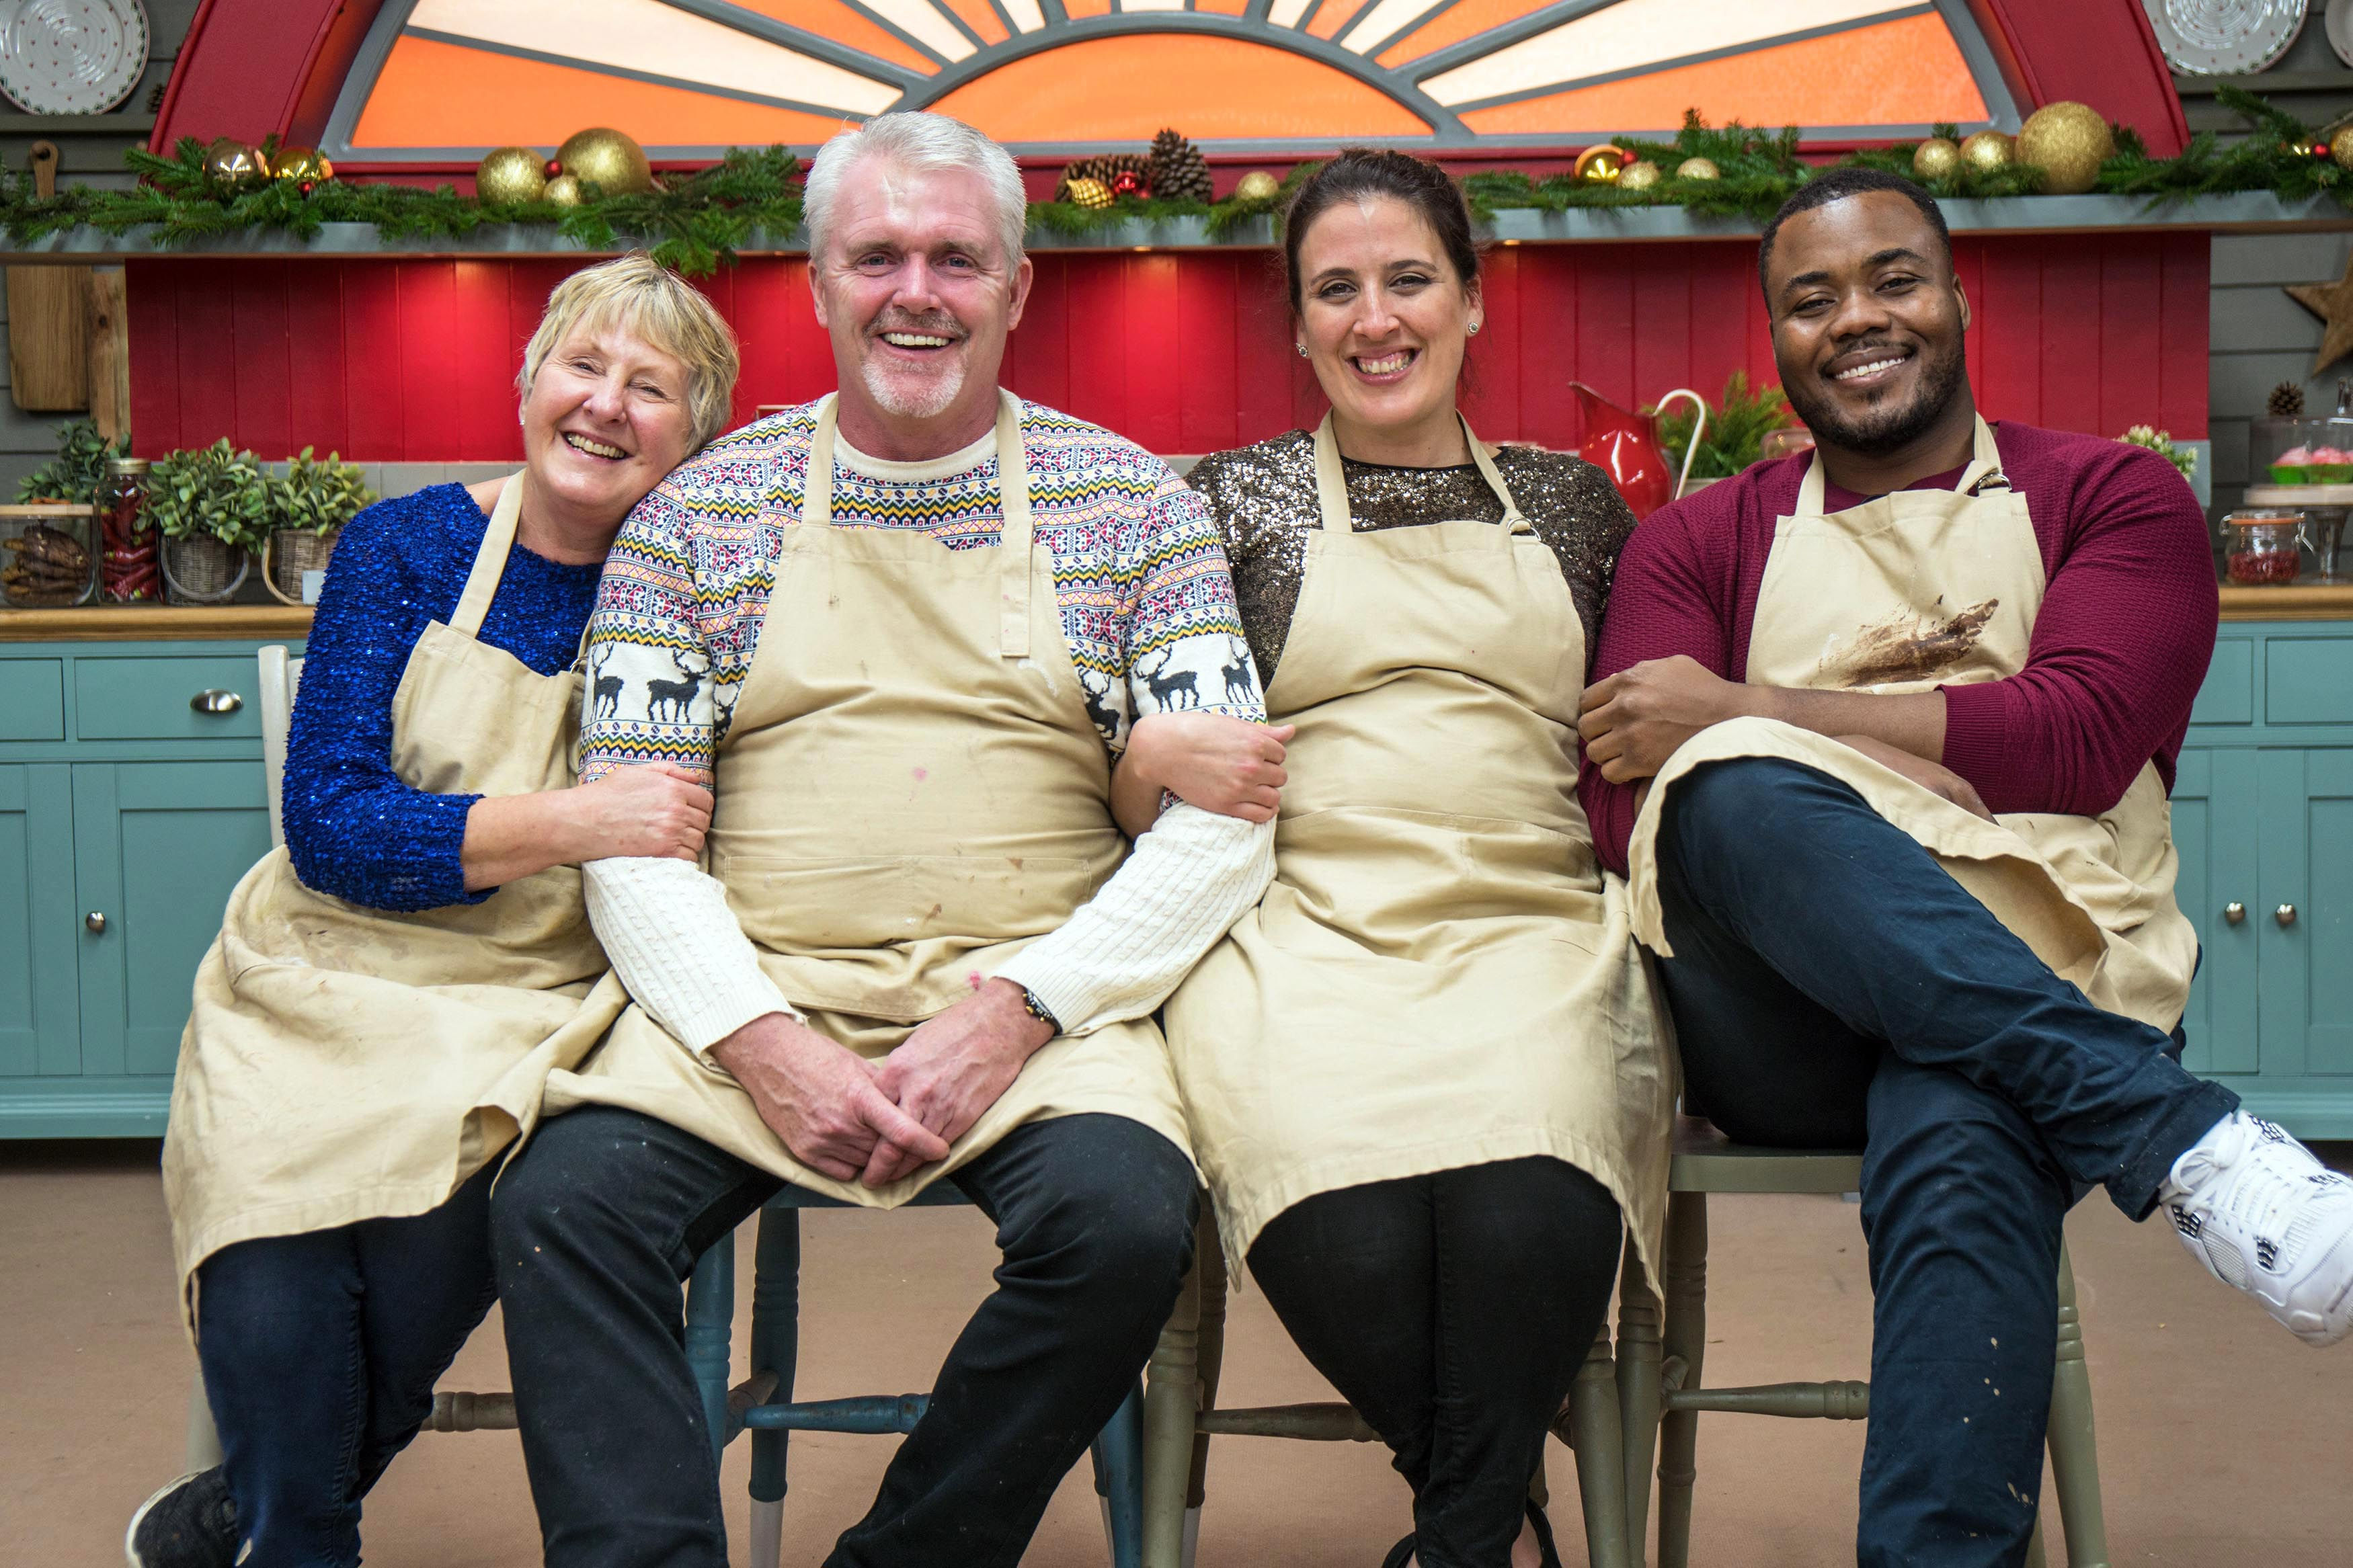 When are the Great British Bake Off Christmas Specials and who's appearing?